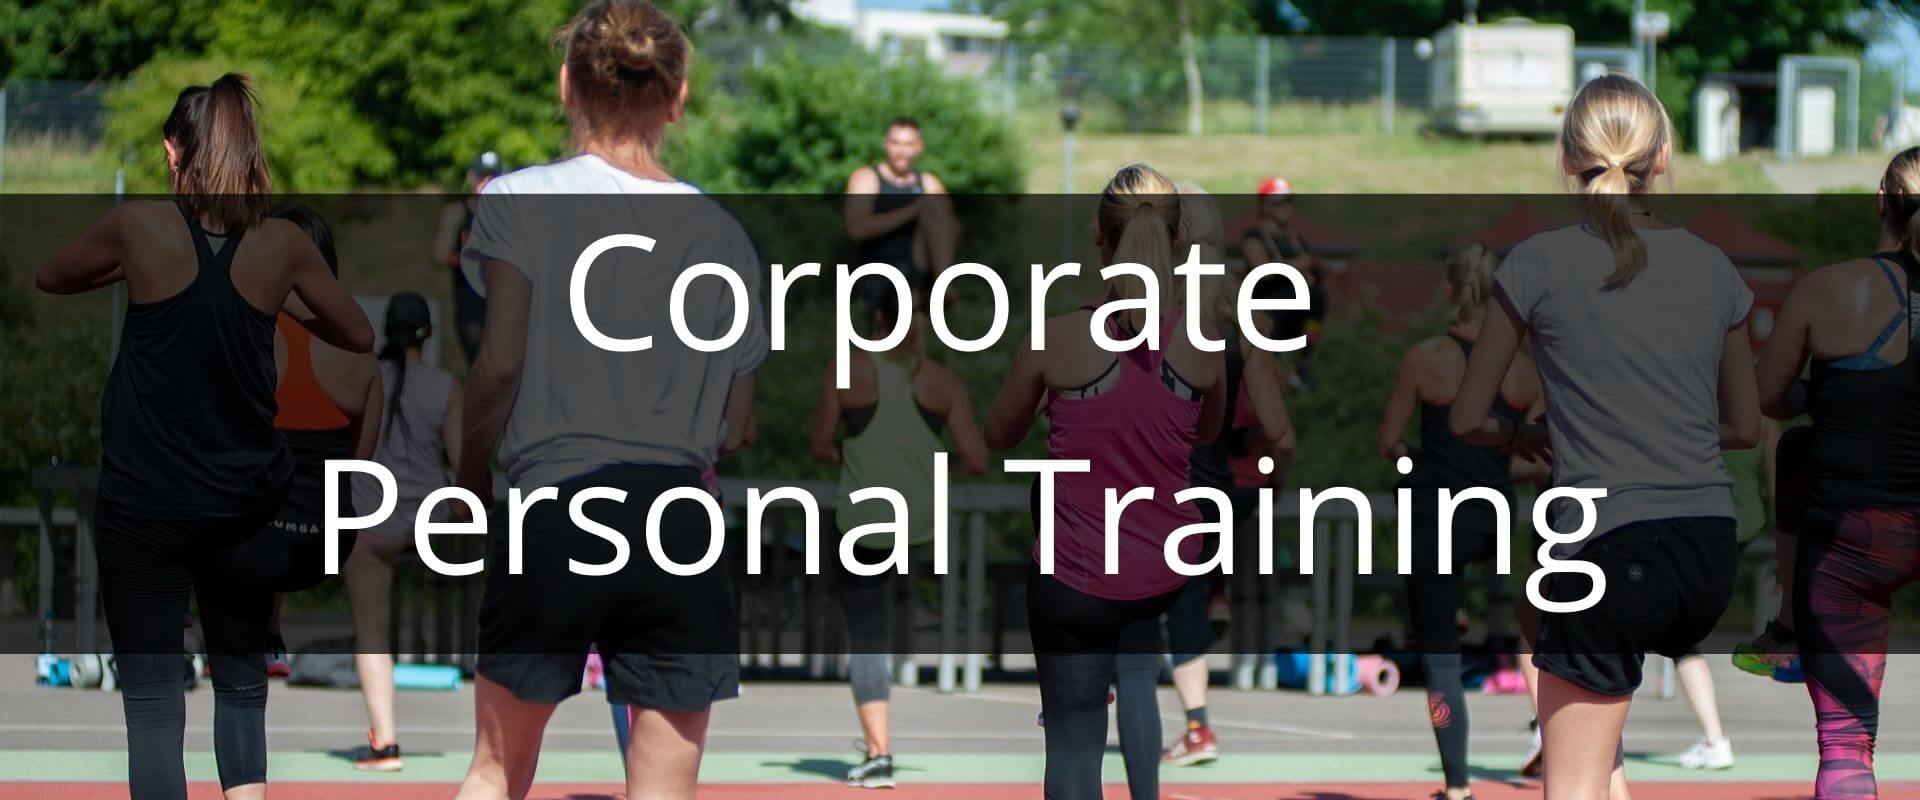 corporate personal training thumbnail